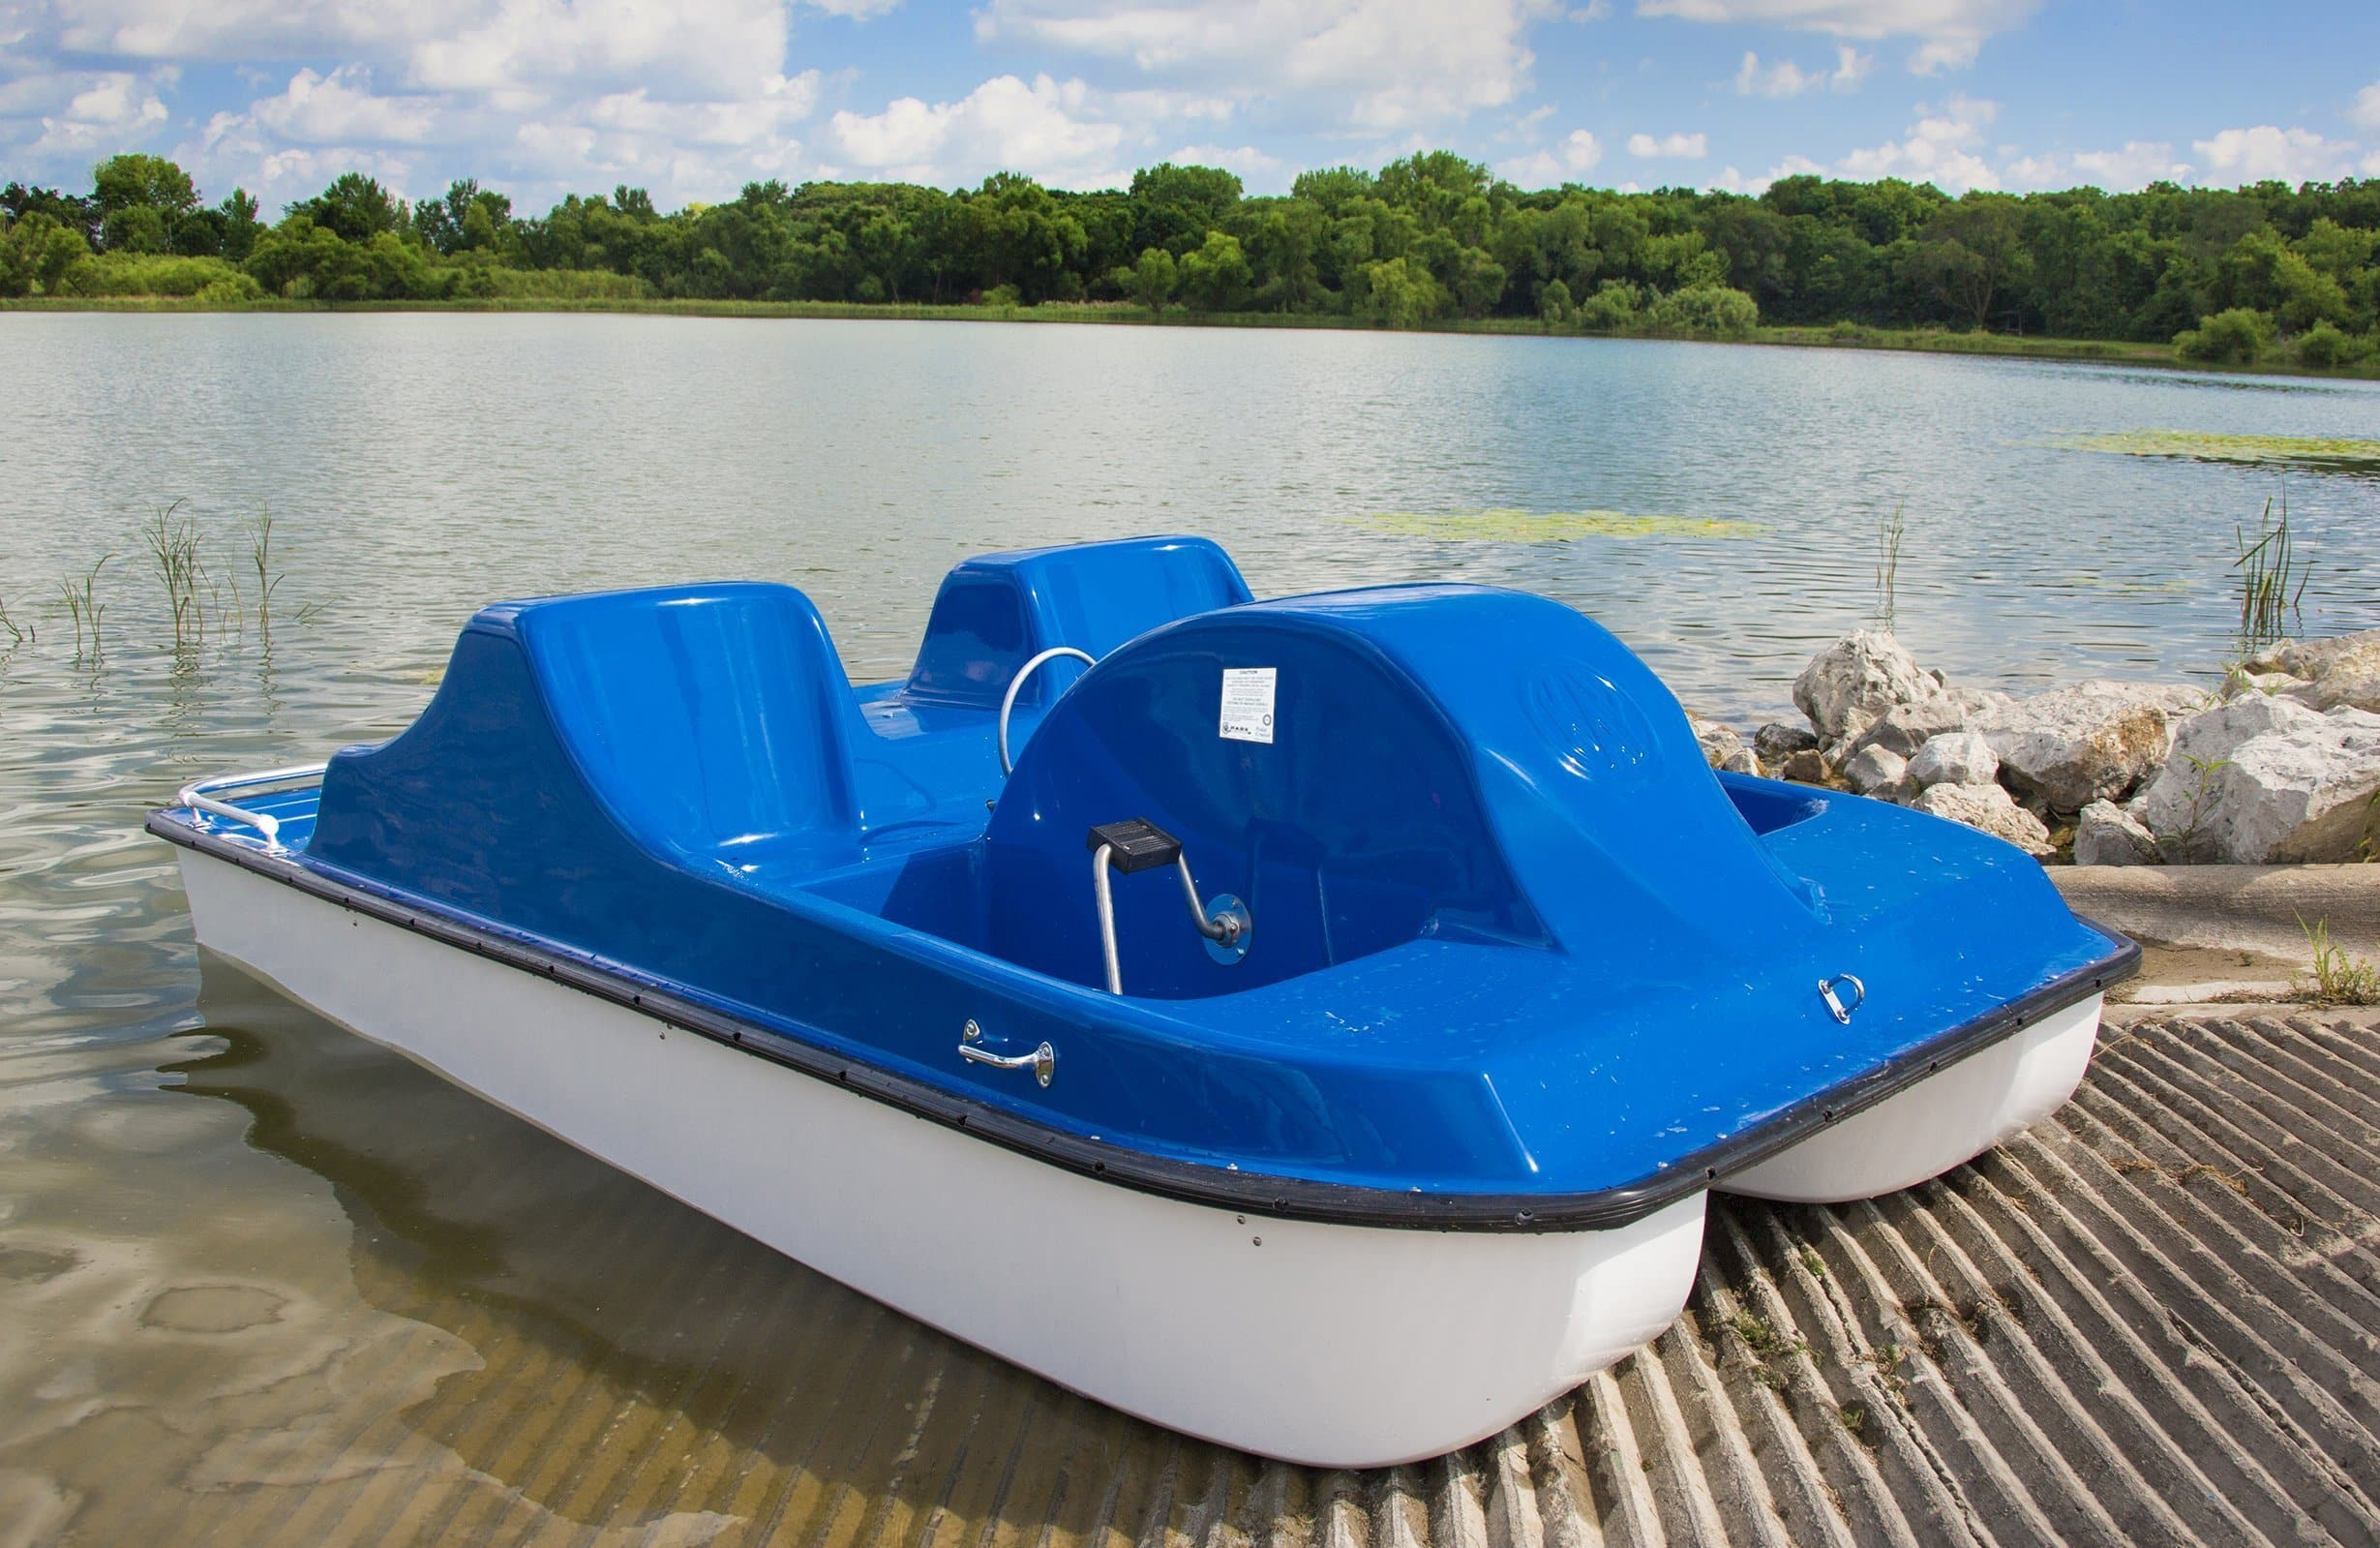 4-Person Pedal Boats | Fiberglass | Commercial Pedal Boat Cruisers